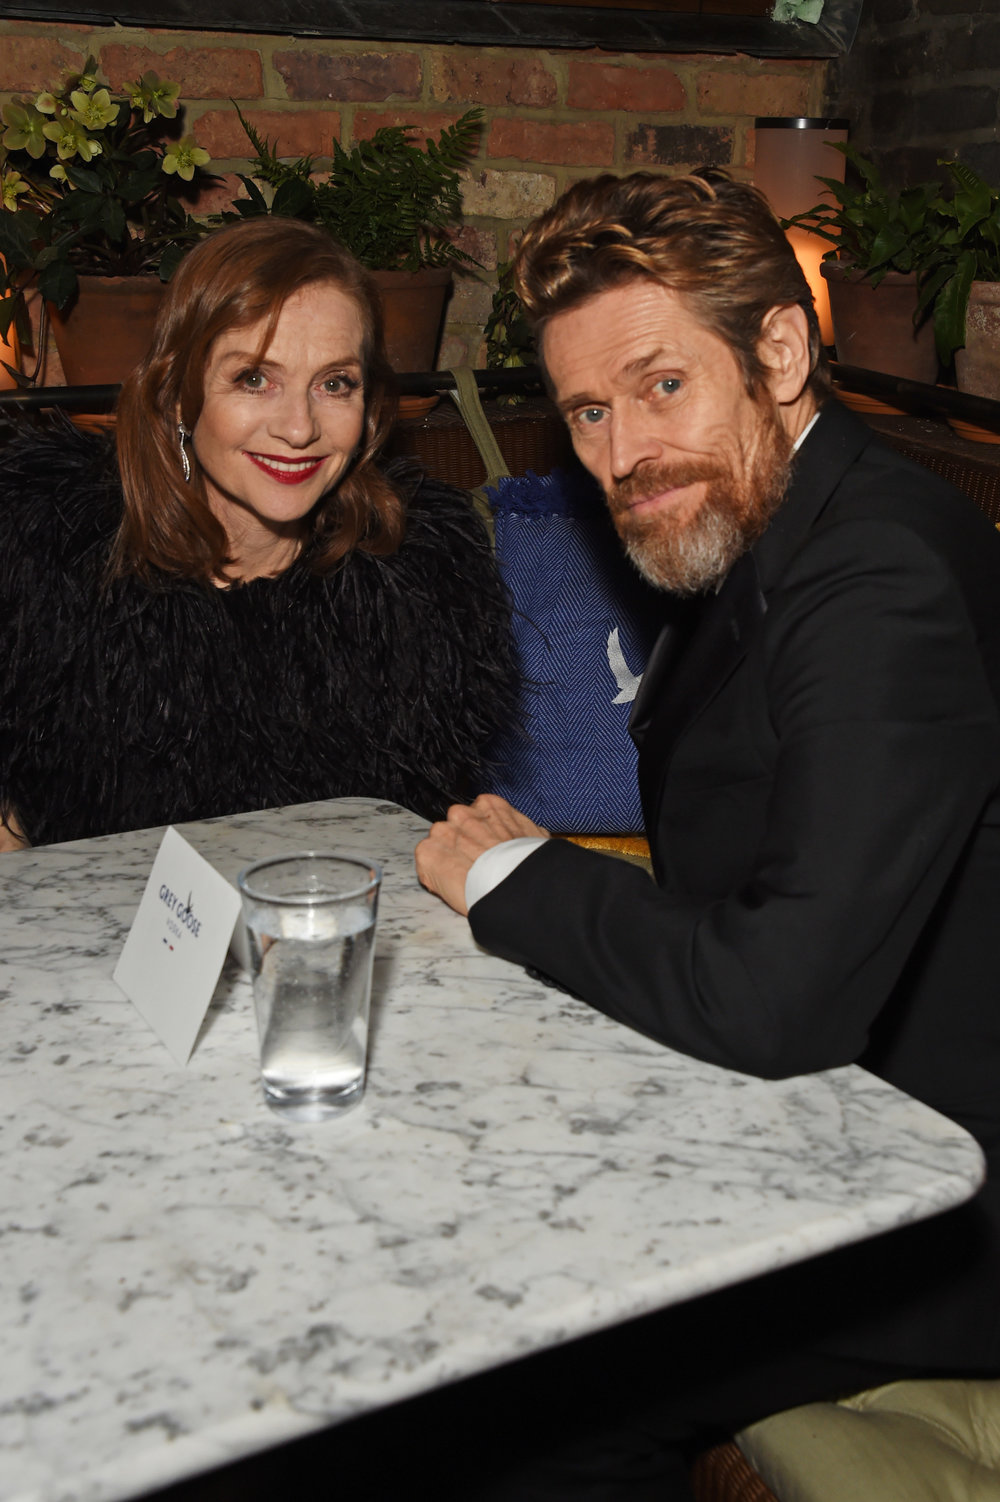 1TlNvQBuwMGjJTh9gml-yv8TIUESUDxV_Willem_Dafeo_and_Isabelle_Huppert_DMB-GREY_GOOSE_BAFTA_AFTERPARTY046.jpg